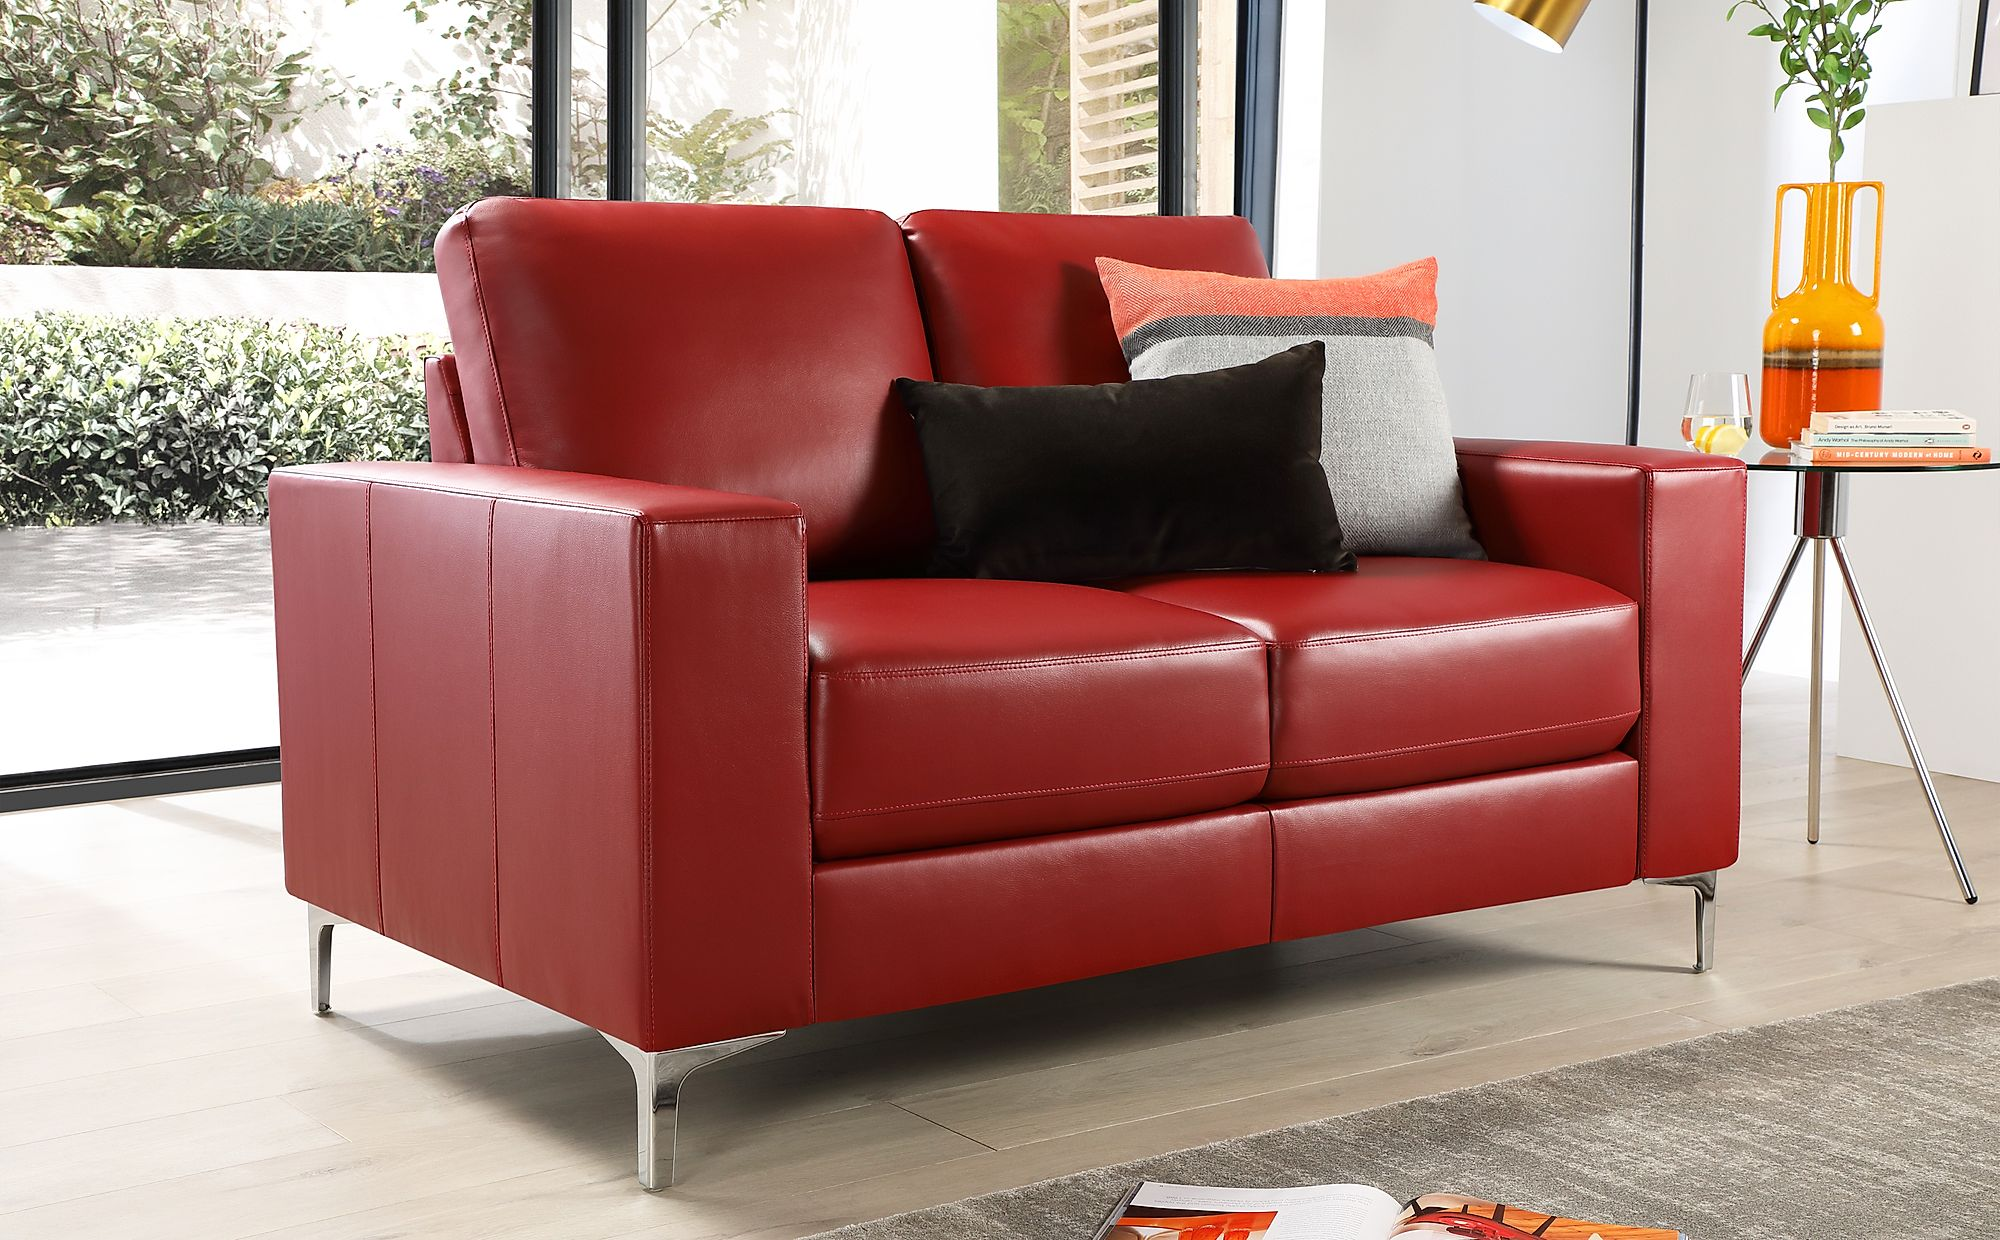 Baltimore 2 Seater Leather Sofa - Red Only £349.99 | Furniture Choice